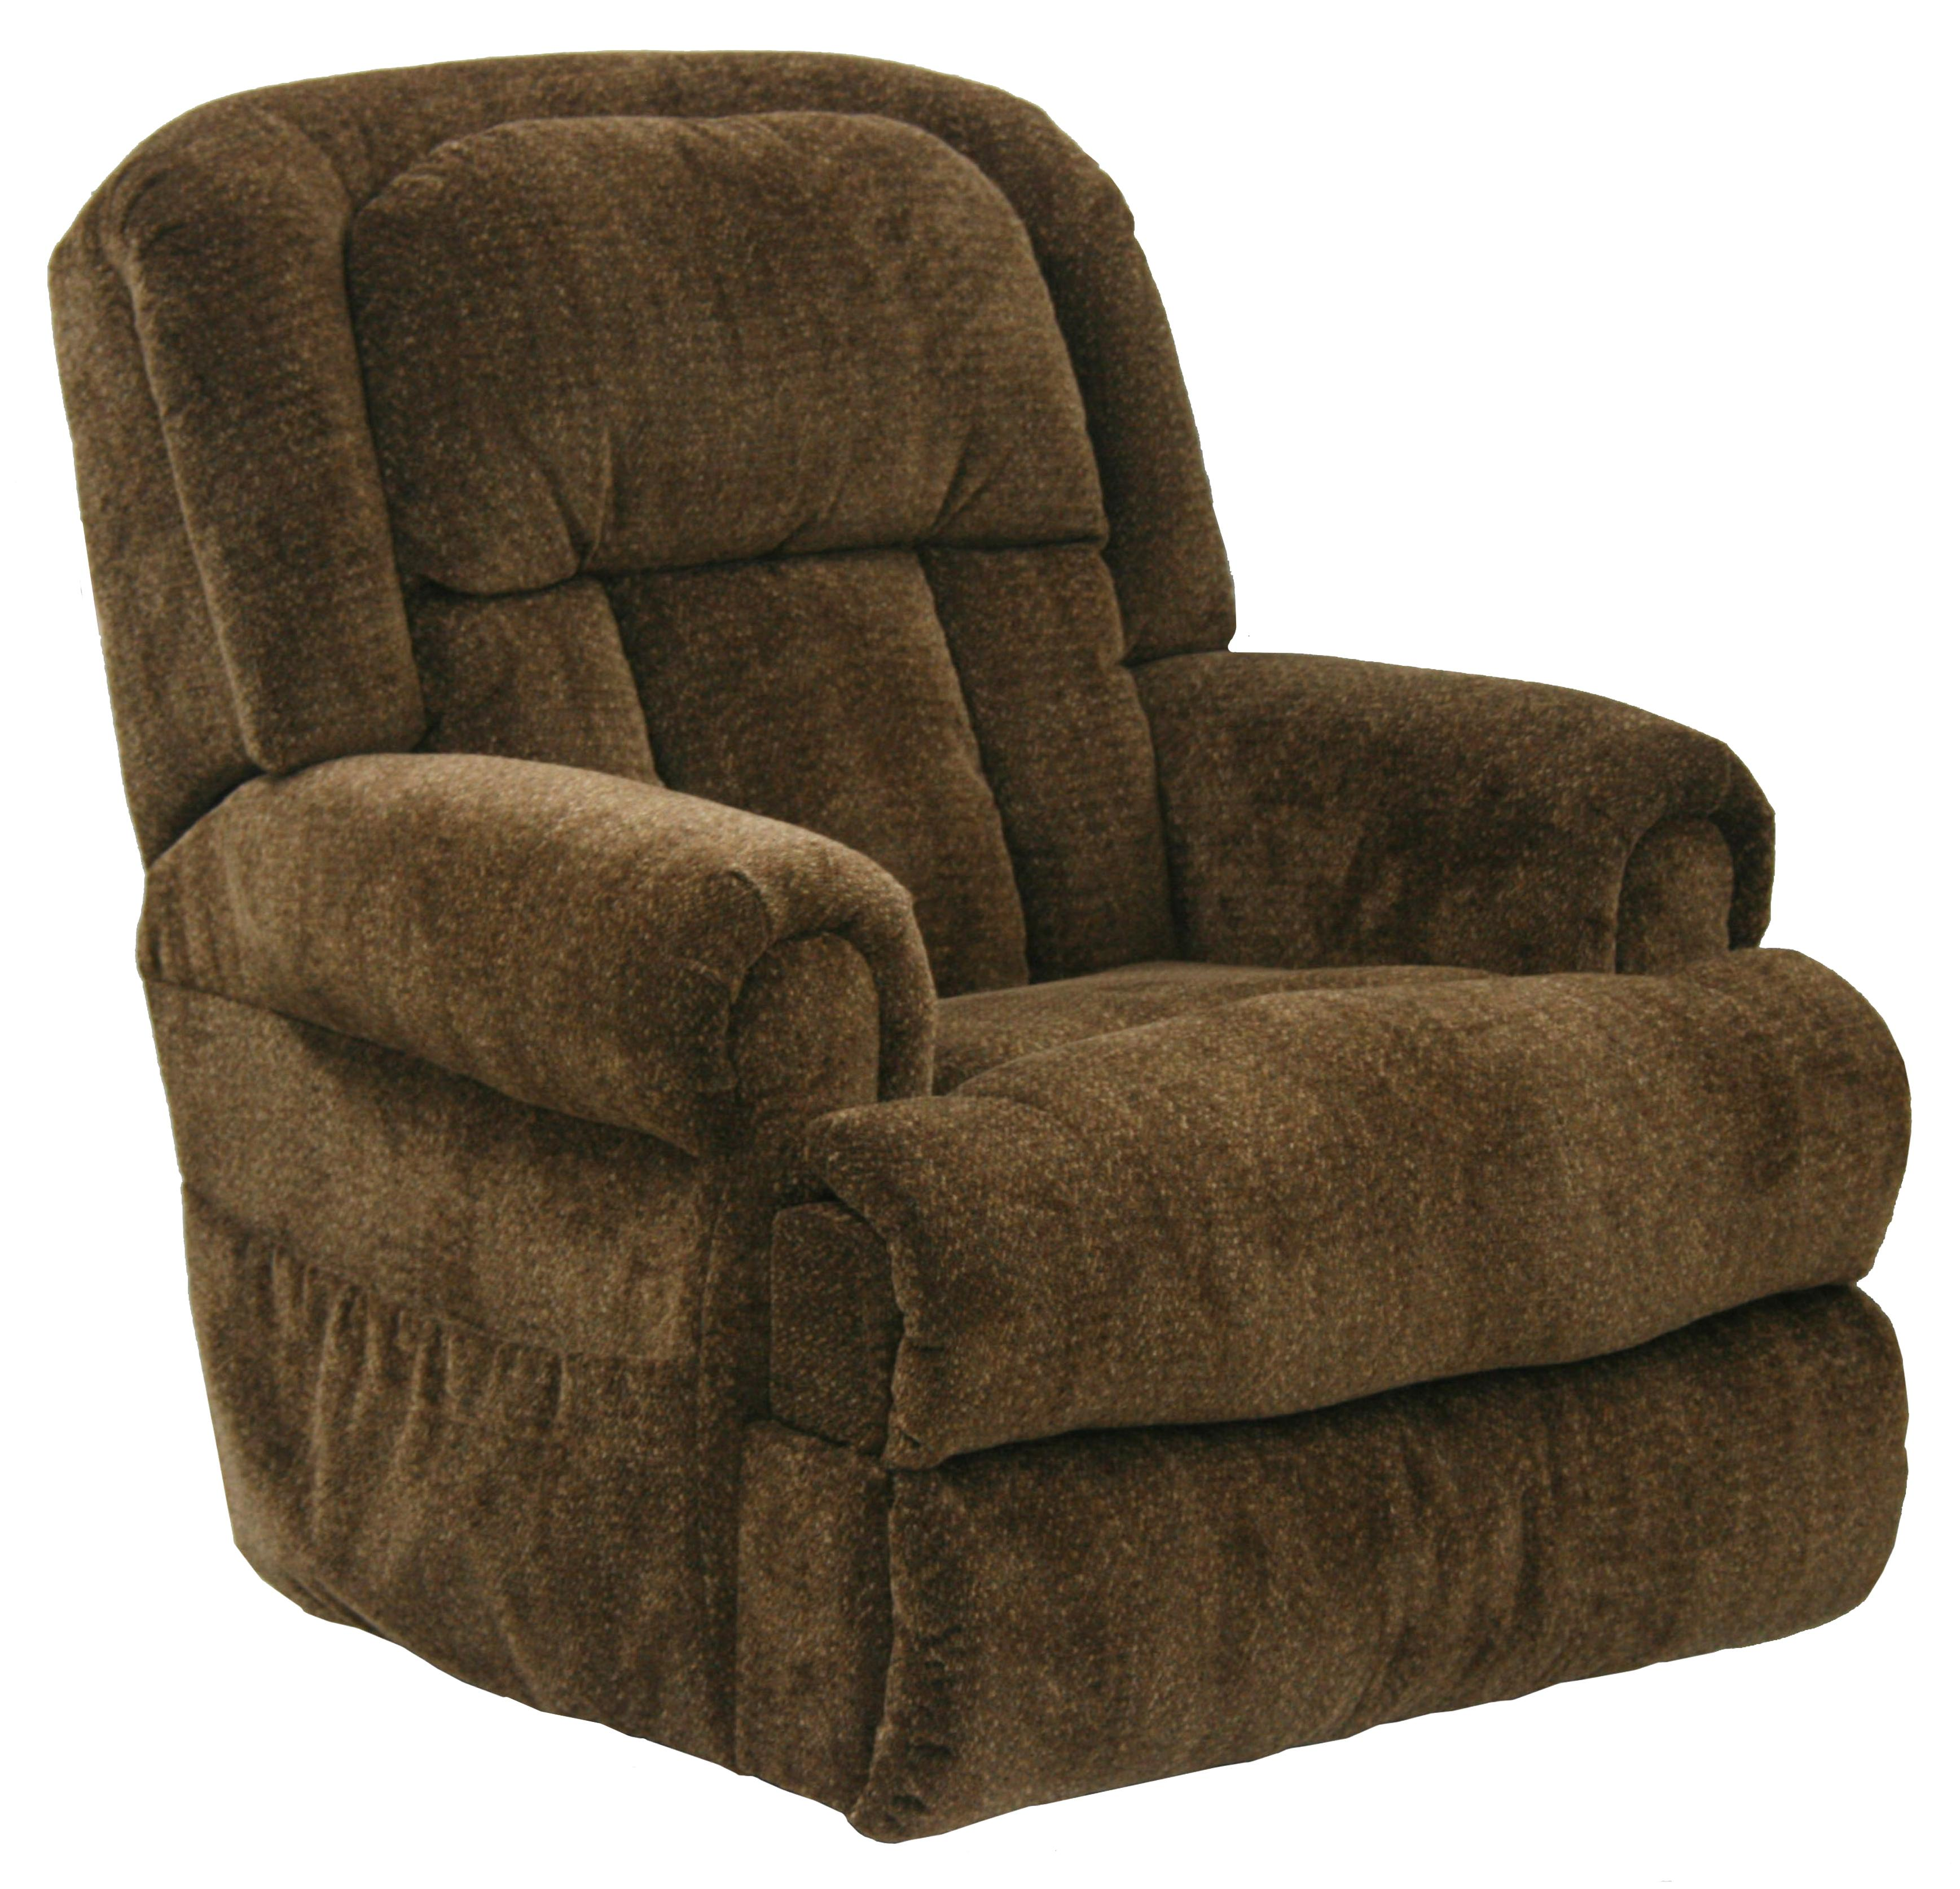 Catnapper Motion Chairs and Recliners Burns Lift Recliner - Item Number: 4847 1763-29